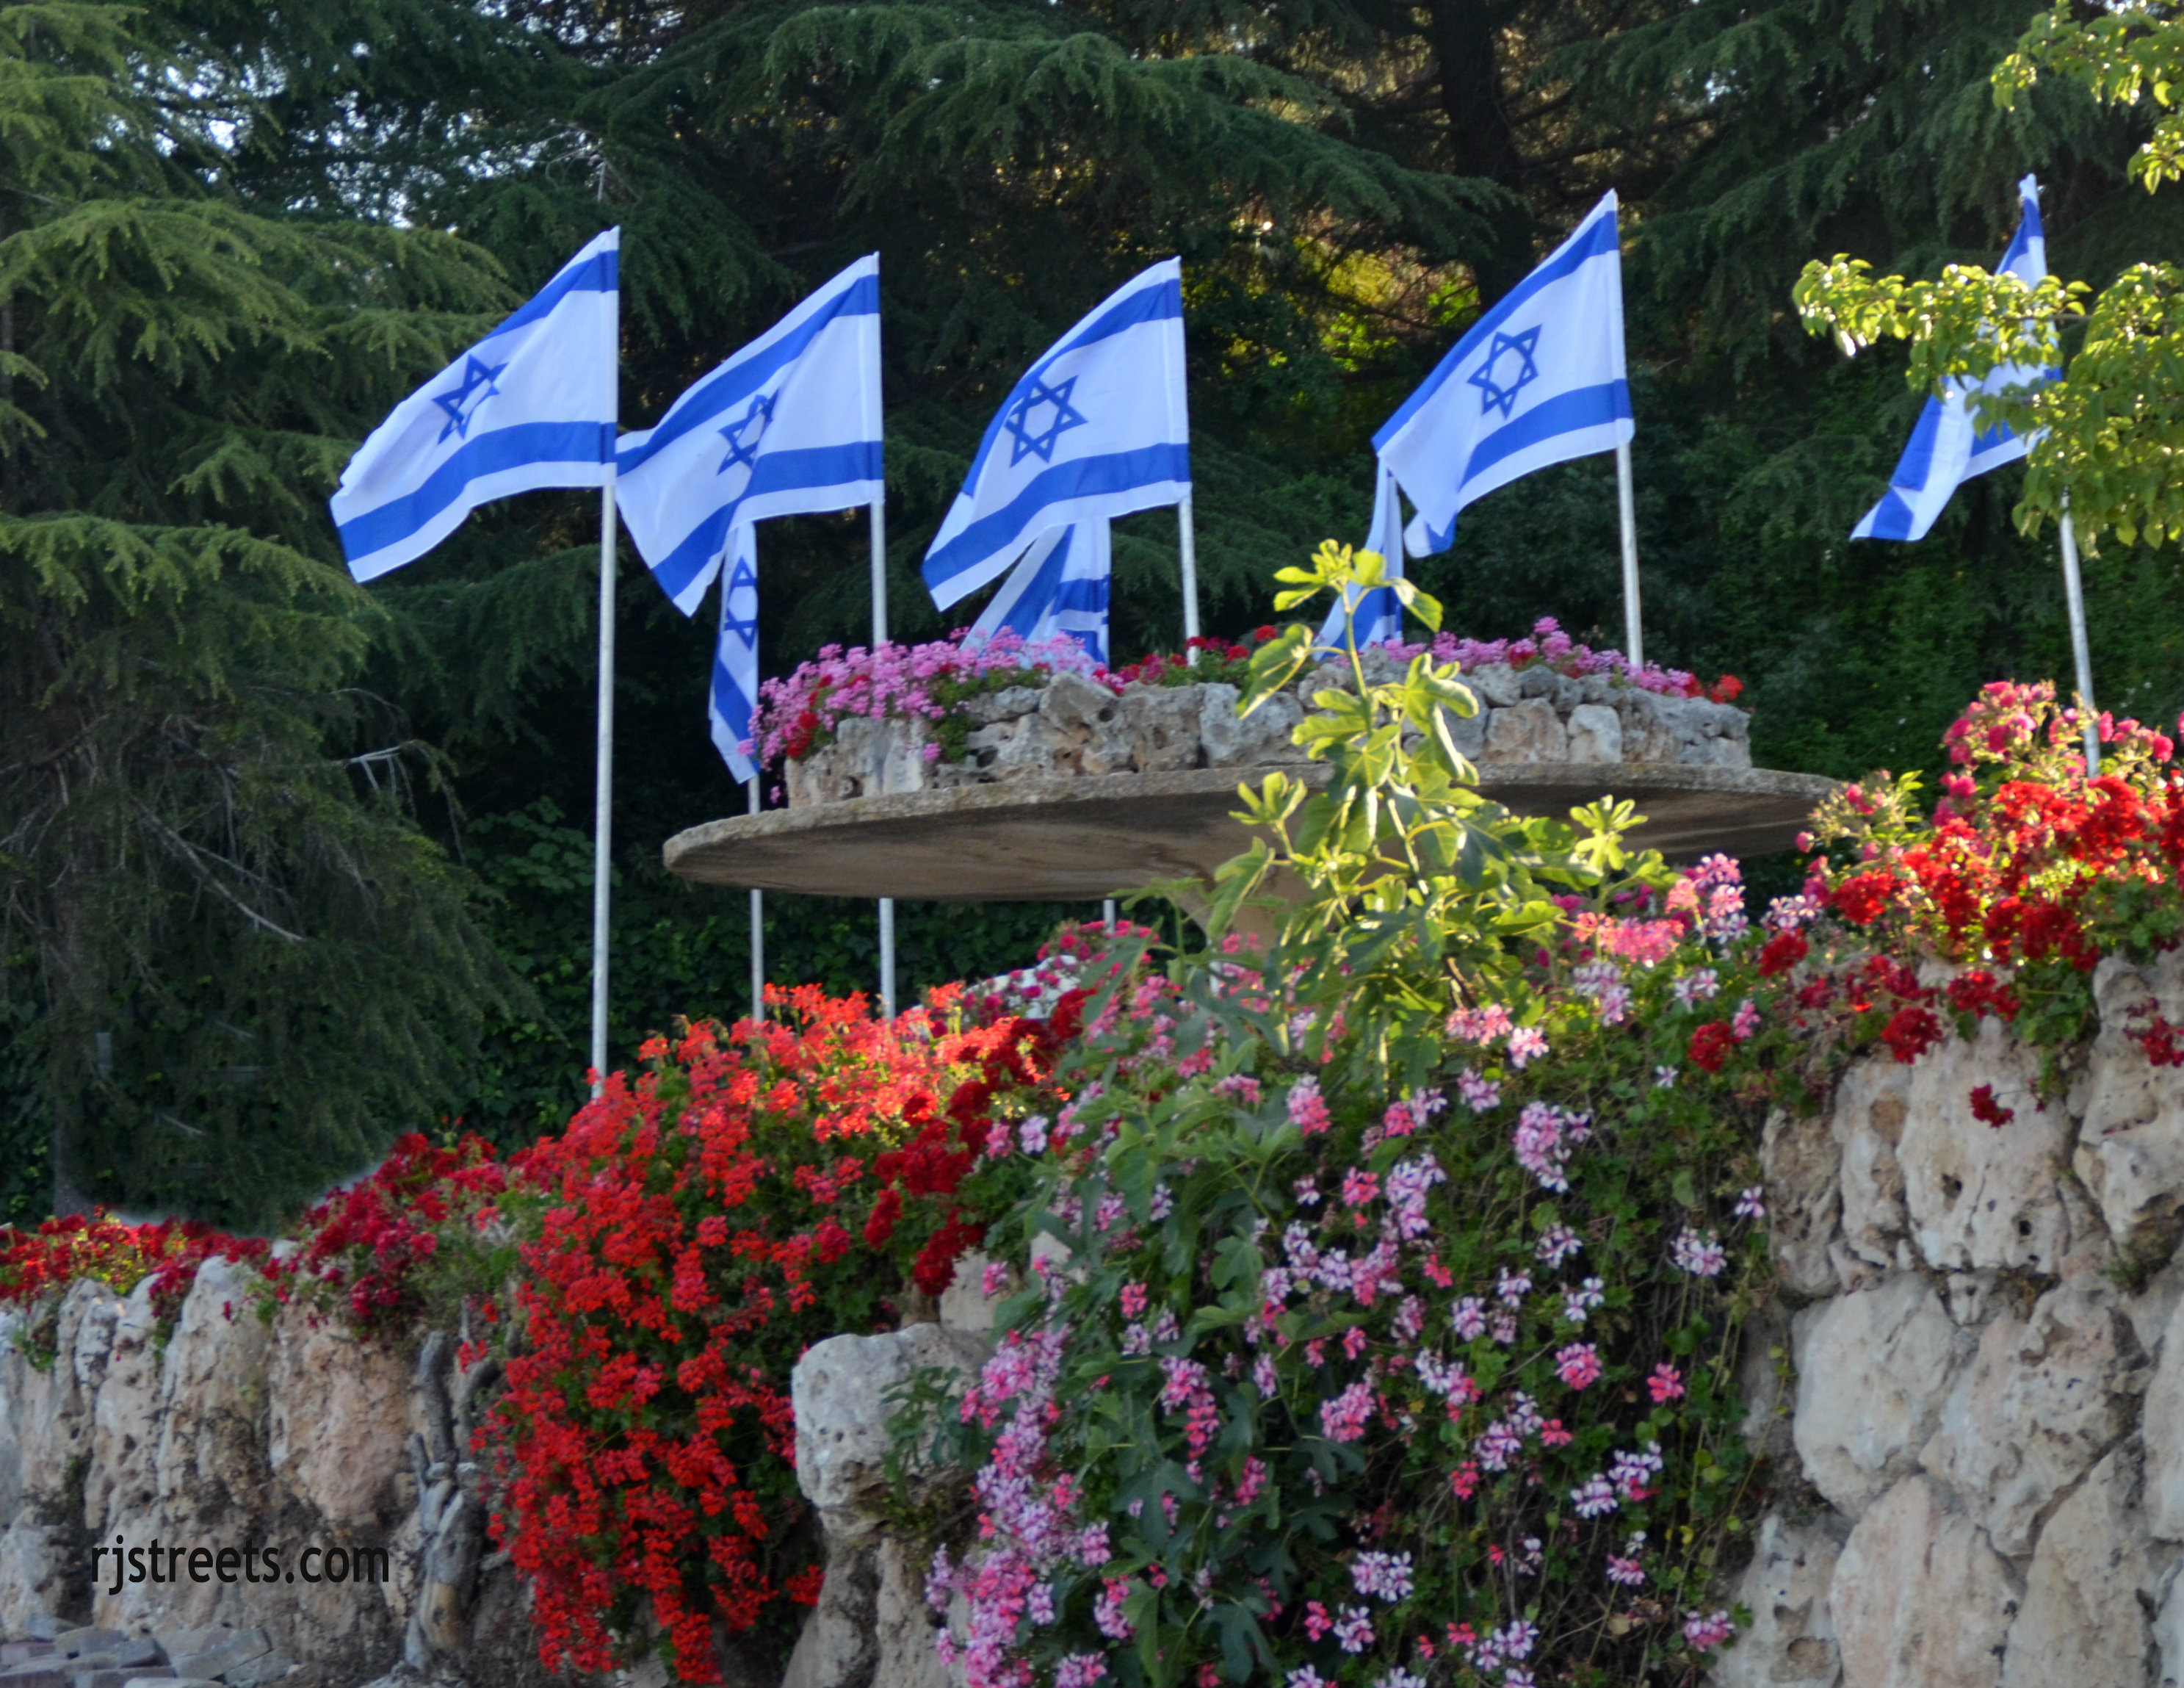 image Israeli flag, large Israel flags blowing photo, picture blue and white flags